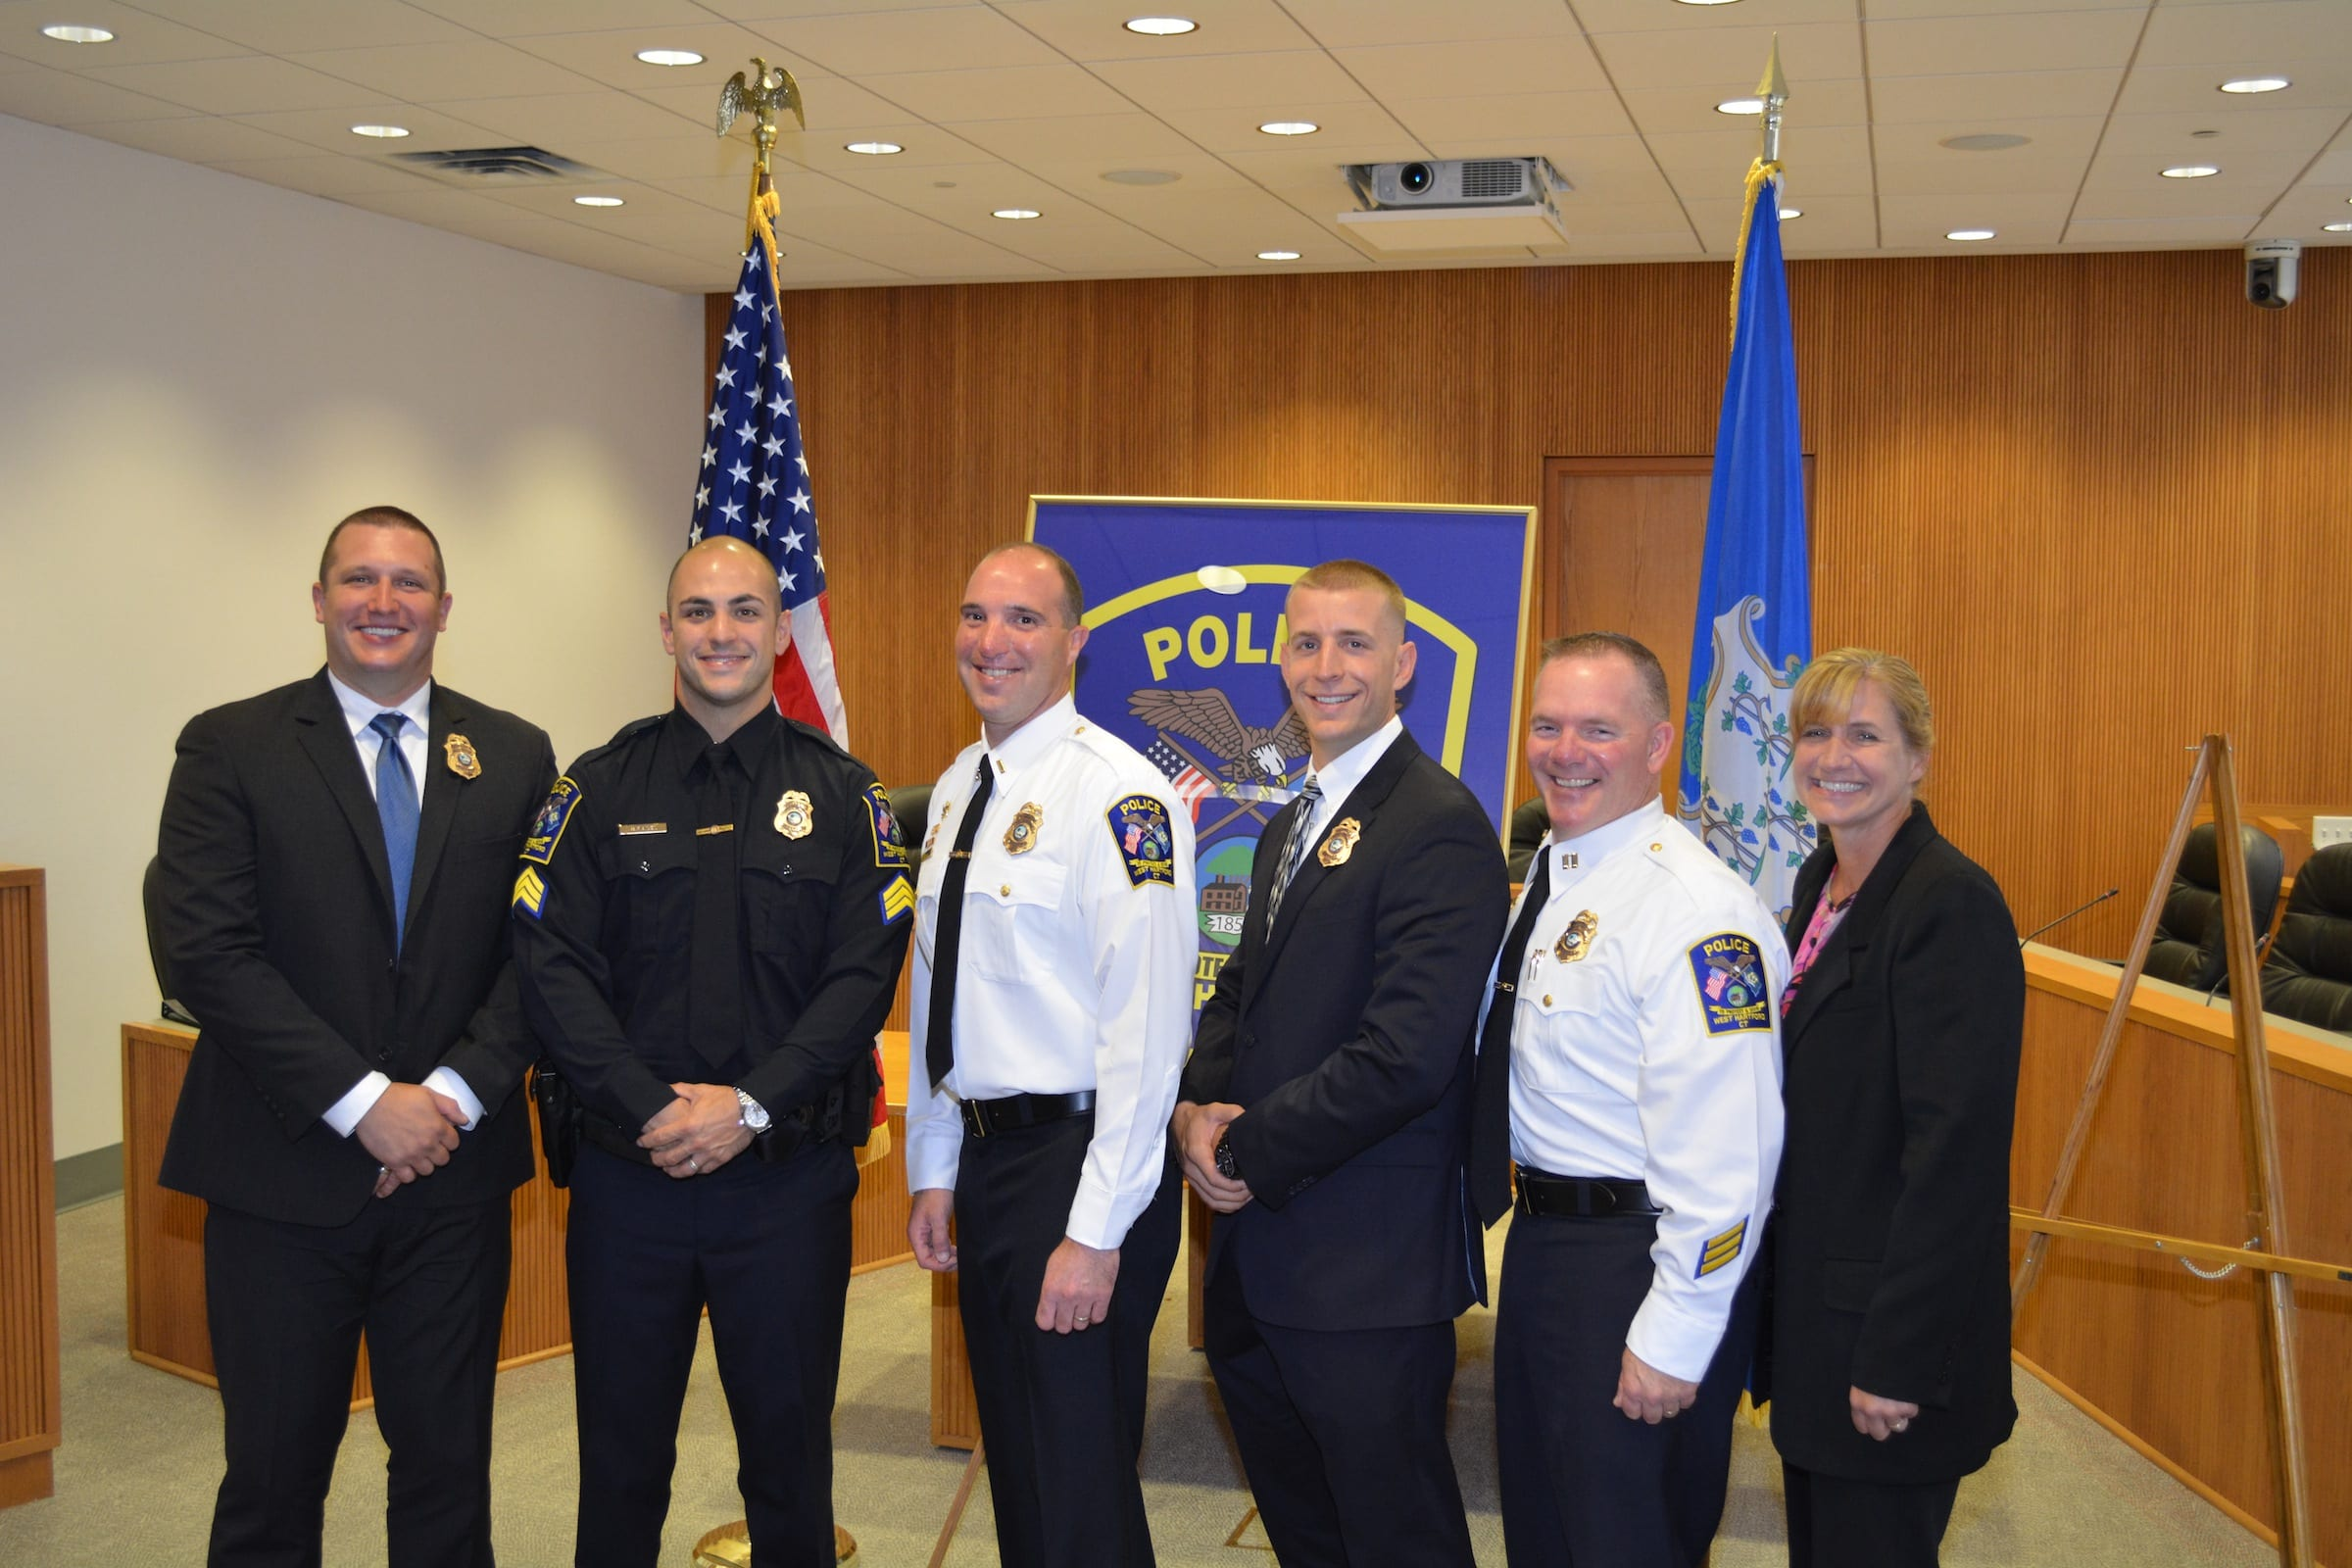 West Hartford Police Celebrate Promotions and Retirement